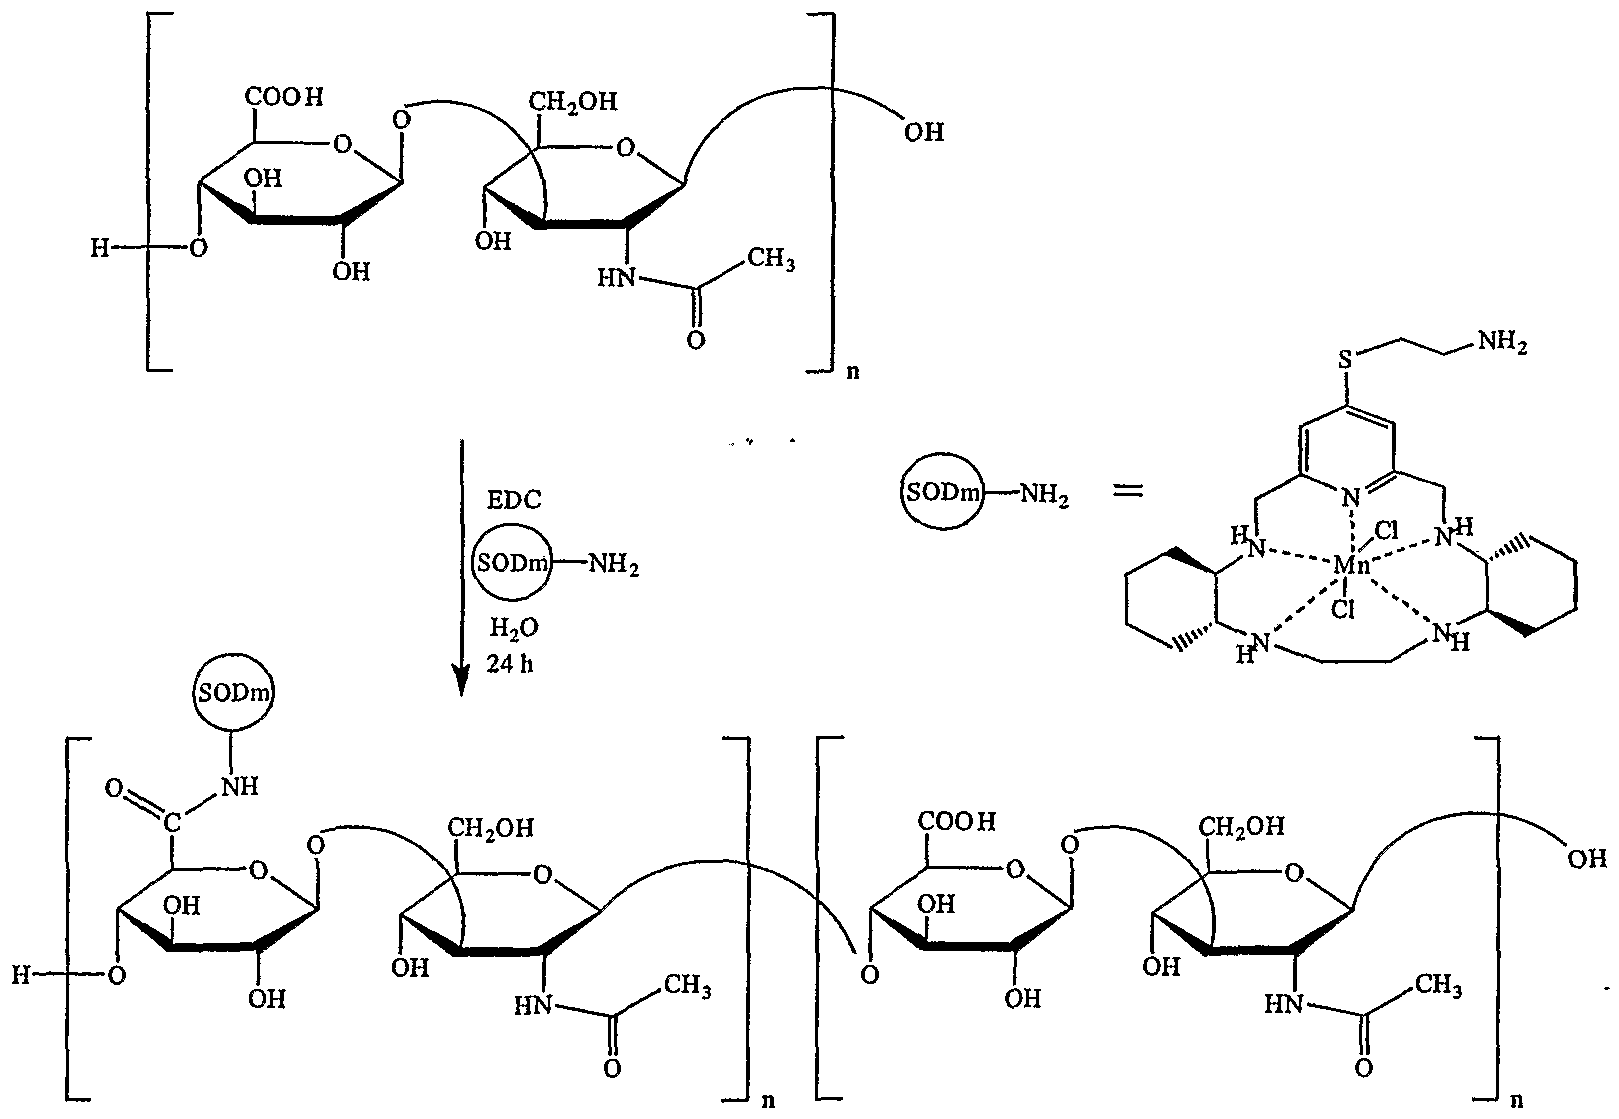 Wo2005044149a1 Modified Hyaluronic Acid Polymers Google Patents Diagramoftheeye23 Diagram Picture Figure Imgf000102 0001